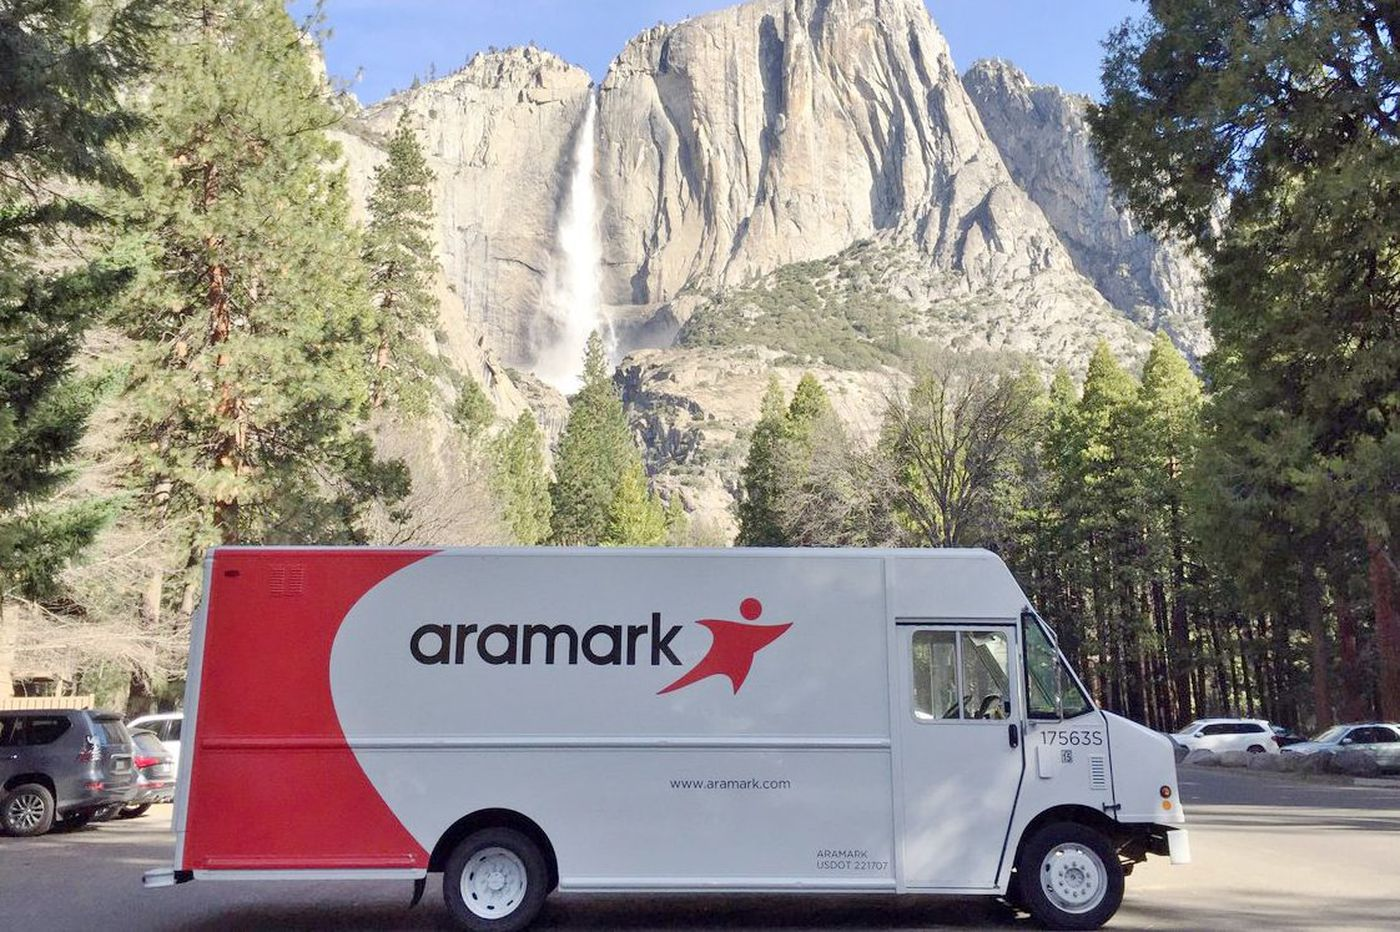 Aramark announces major acquisitions worth $2 billion-plus